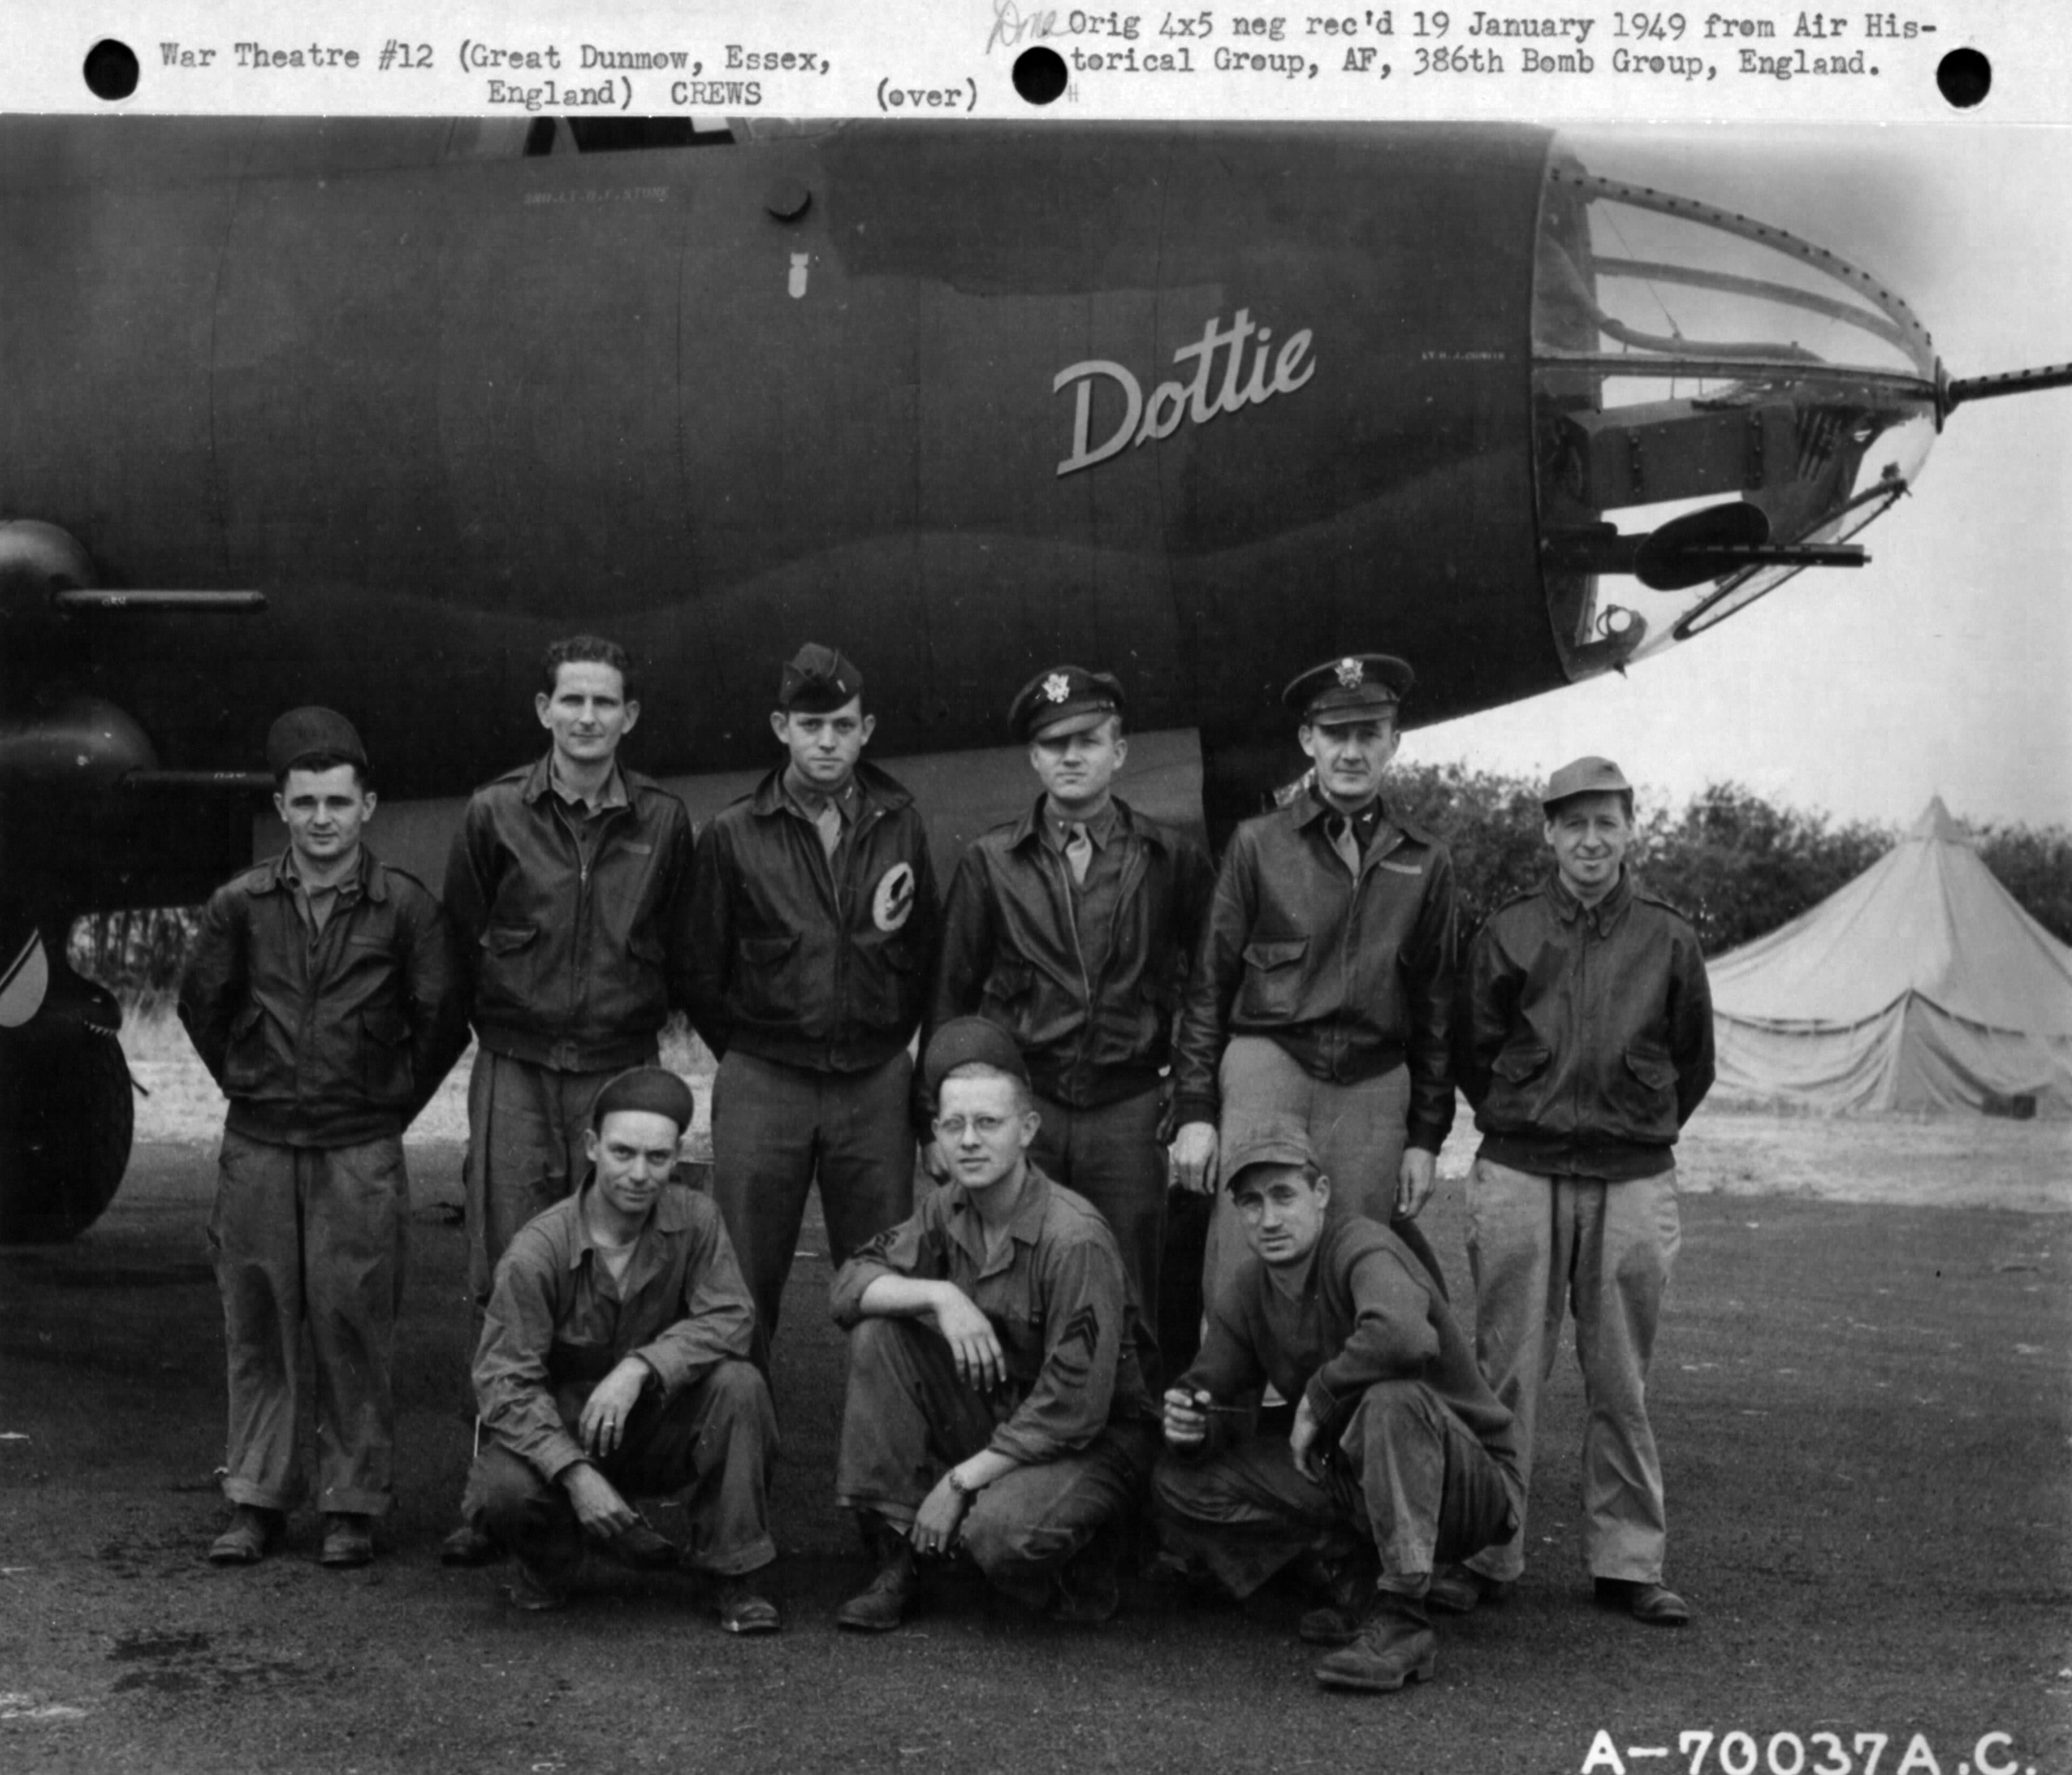 USAAF 41 34954 B 26C Marauder 386BG552BS RGQ Dottie with crew Great Dunmow Essex Engalnd 1 Sep 1943 01